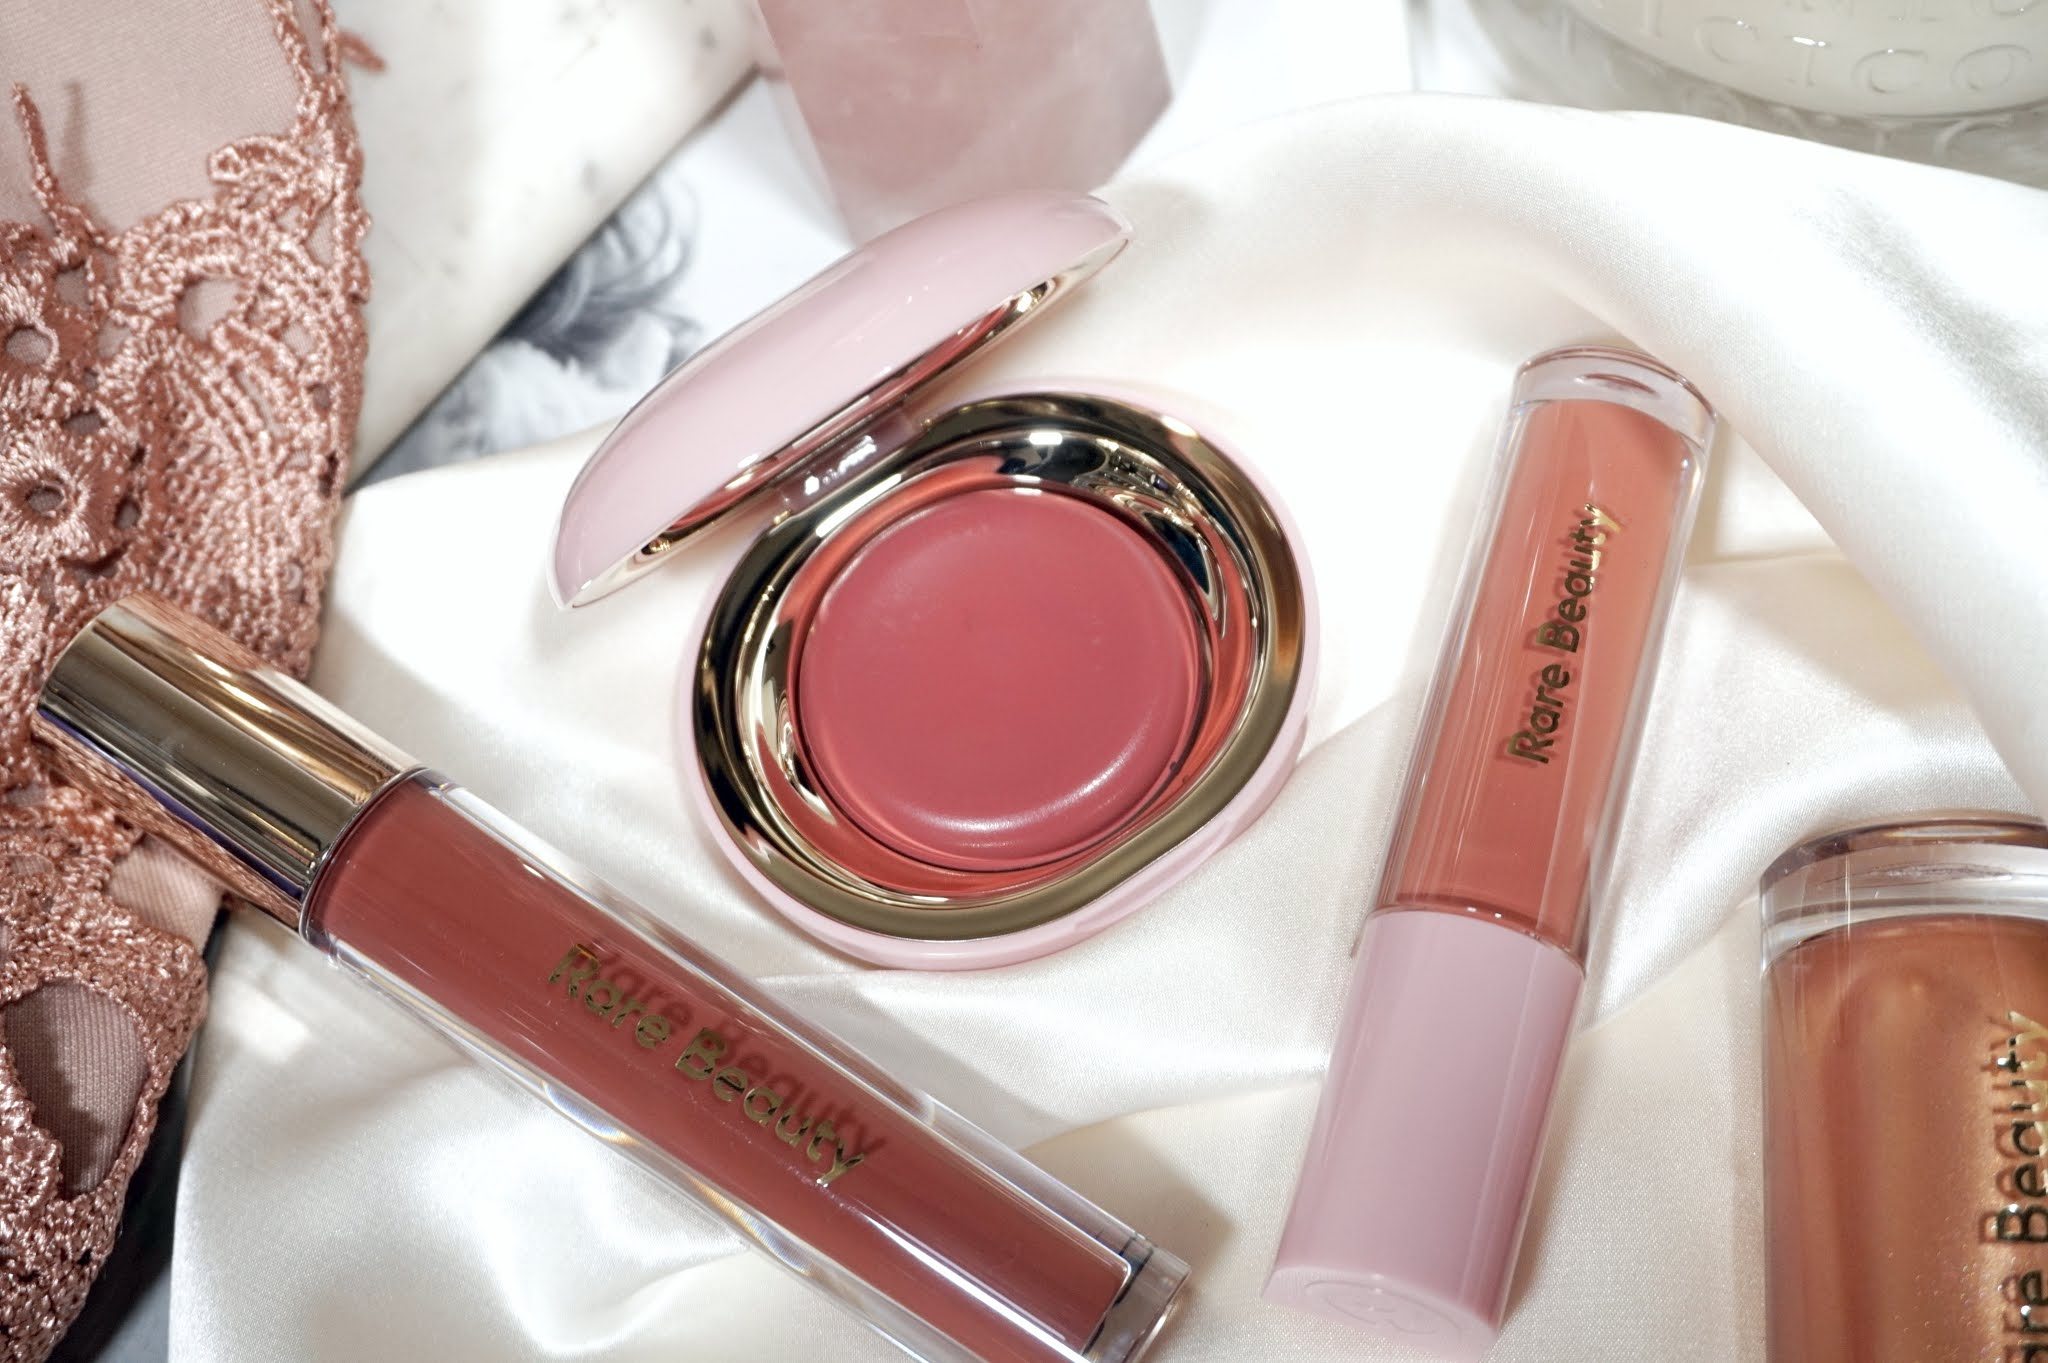 Rare Beauty Stay Vulnerable Collection Review and Swatches